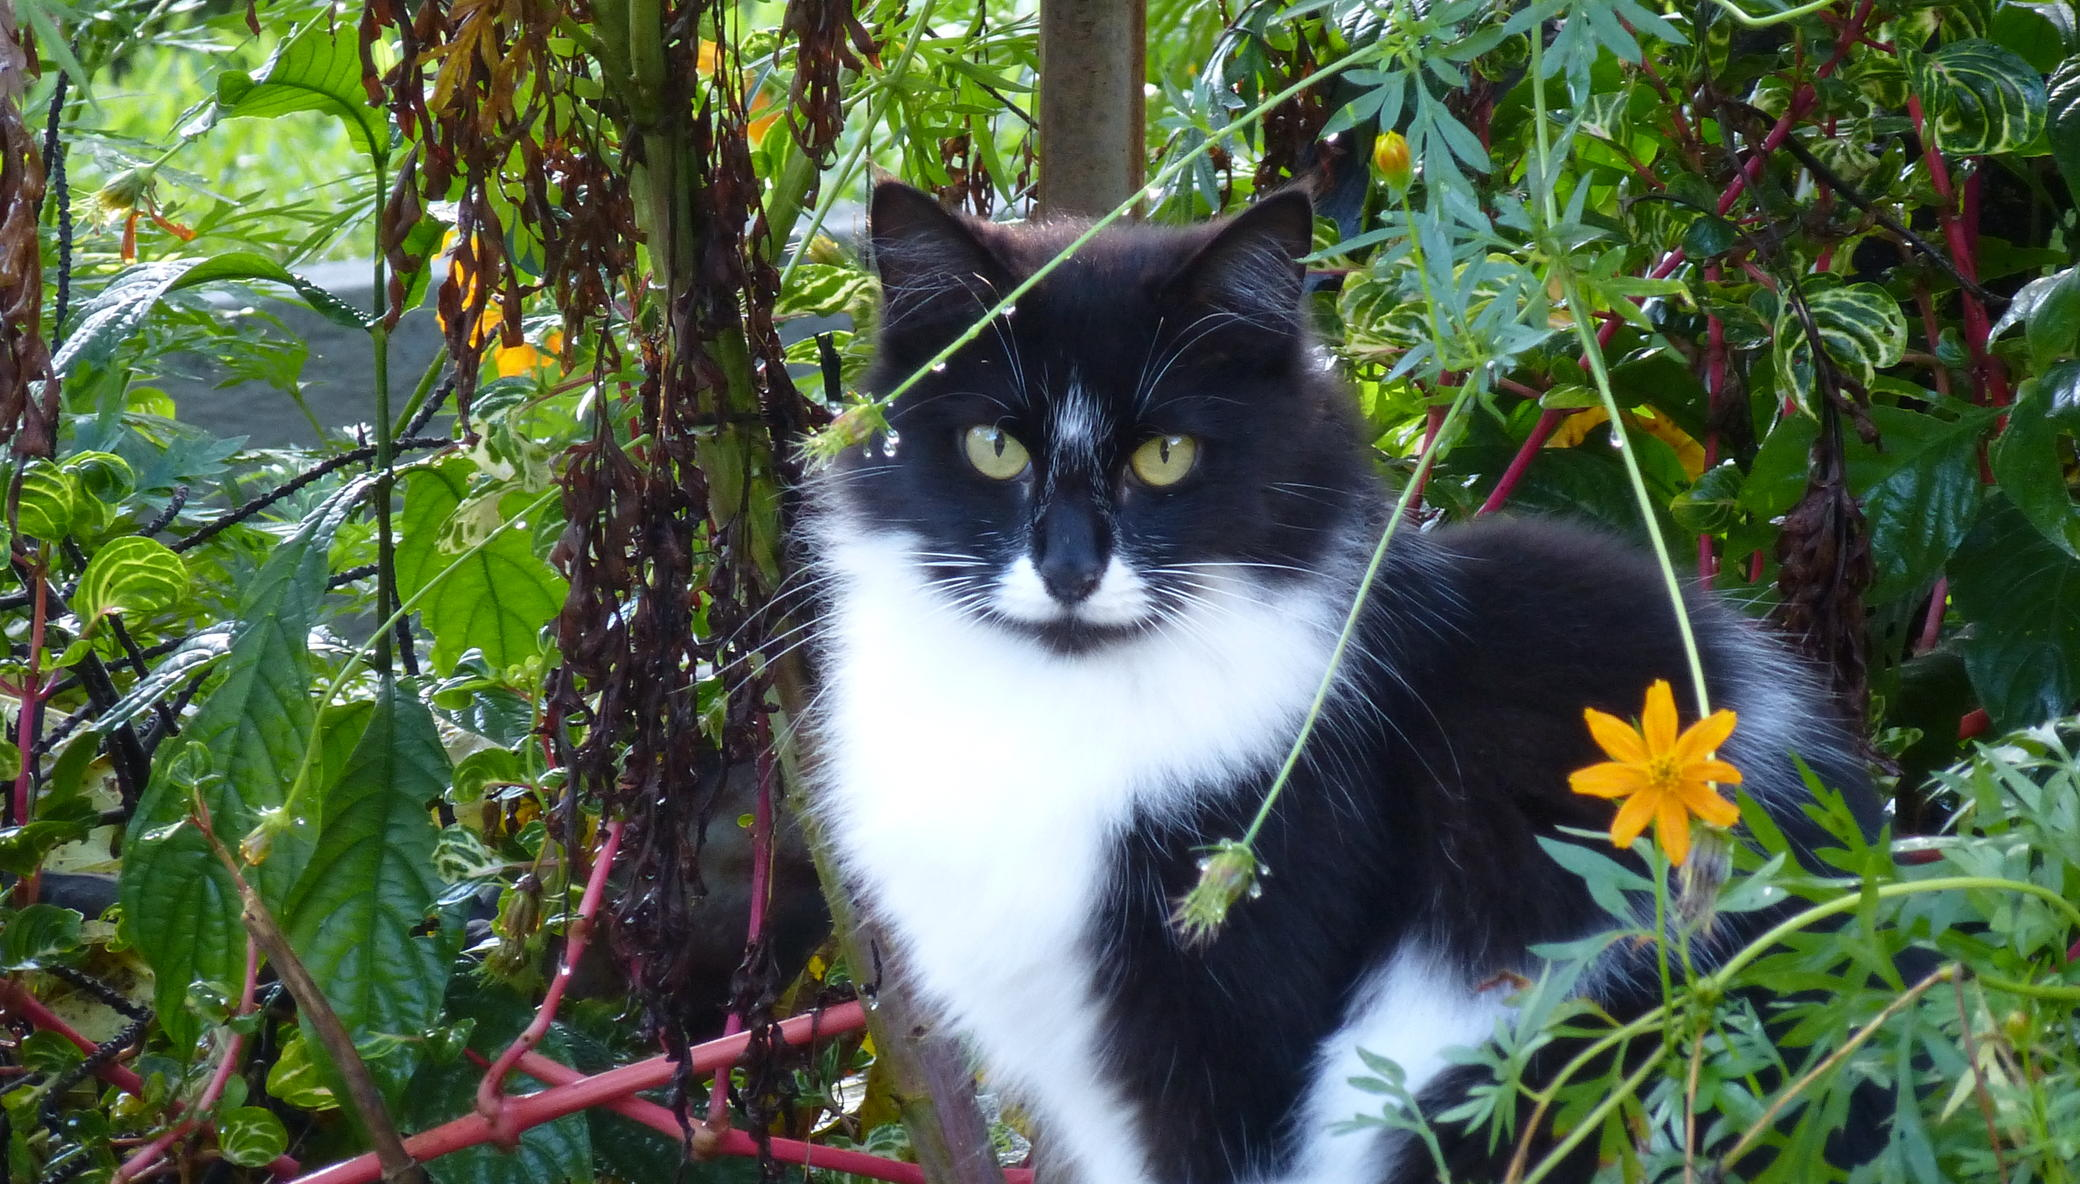 Caring for Cats: Neutering, Food and Shelter